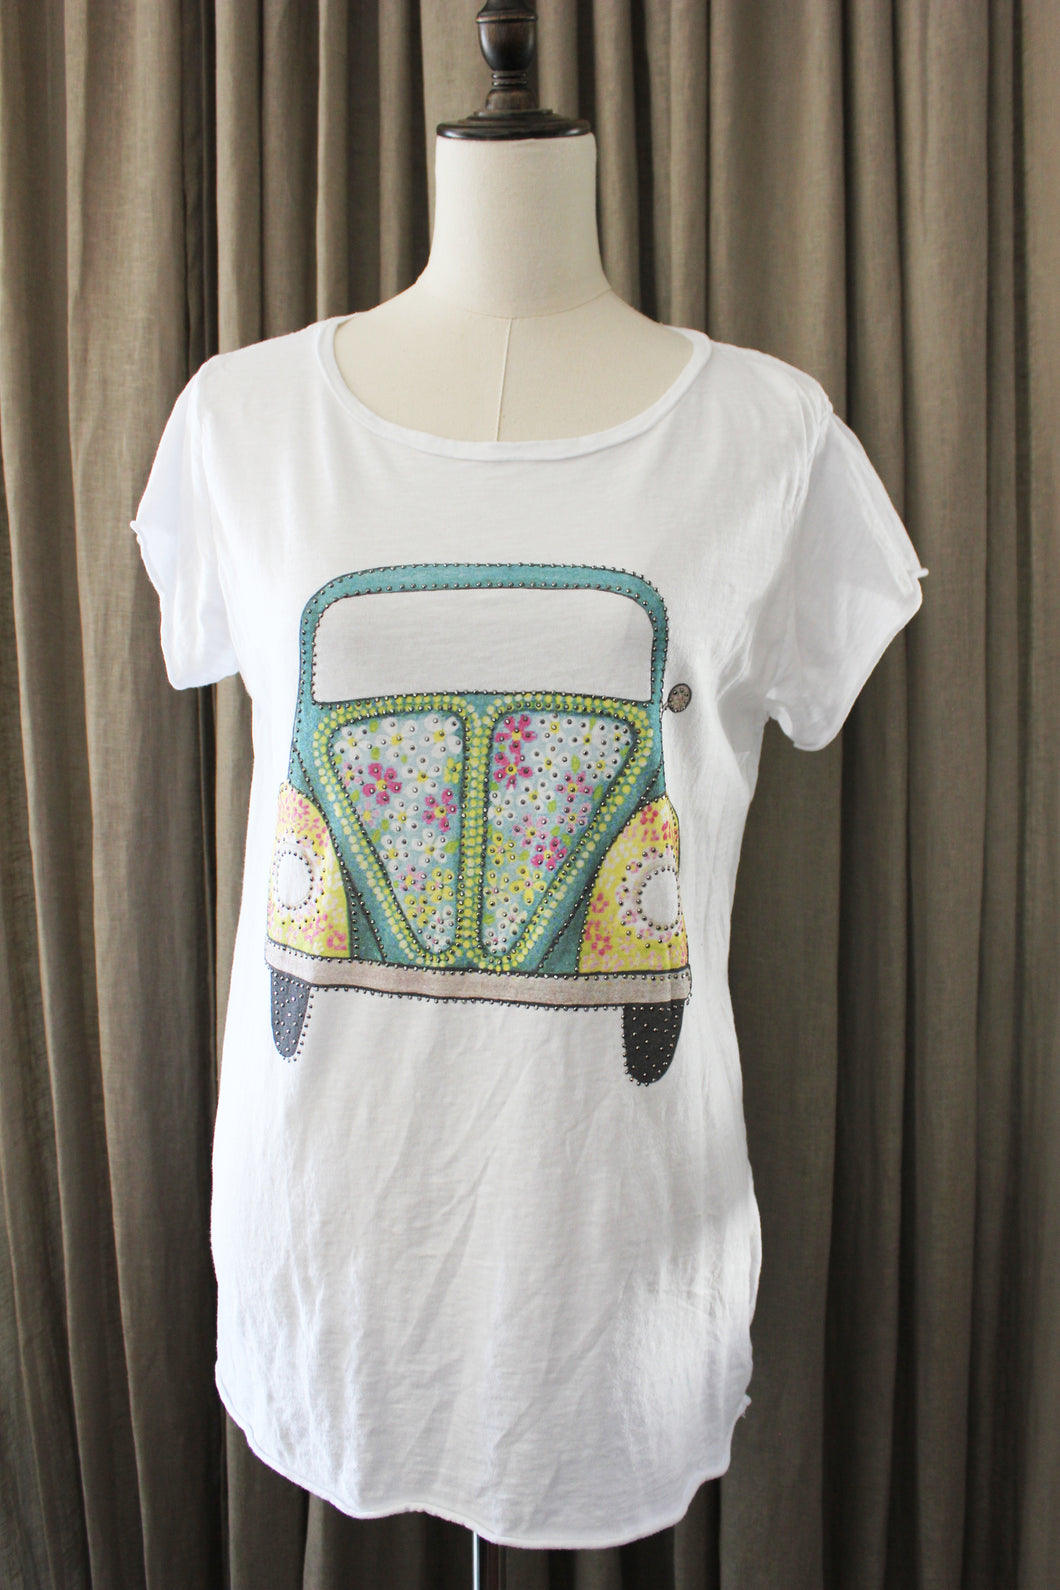 Strass T Shirt pease and love Volkswagen auto